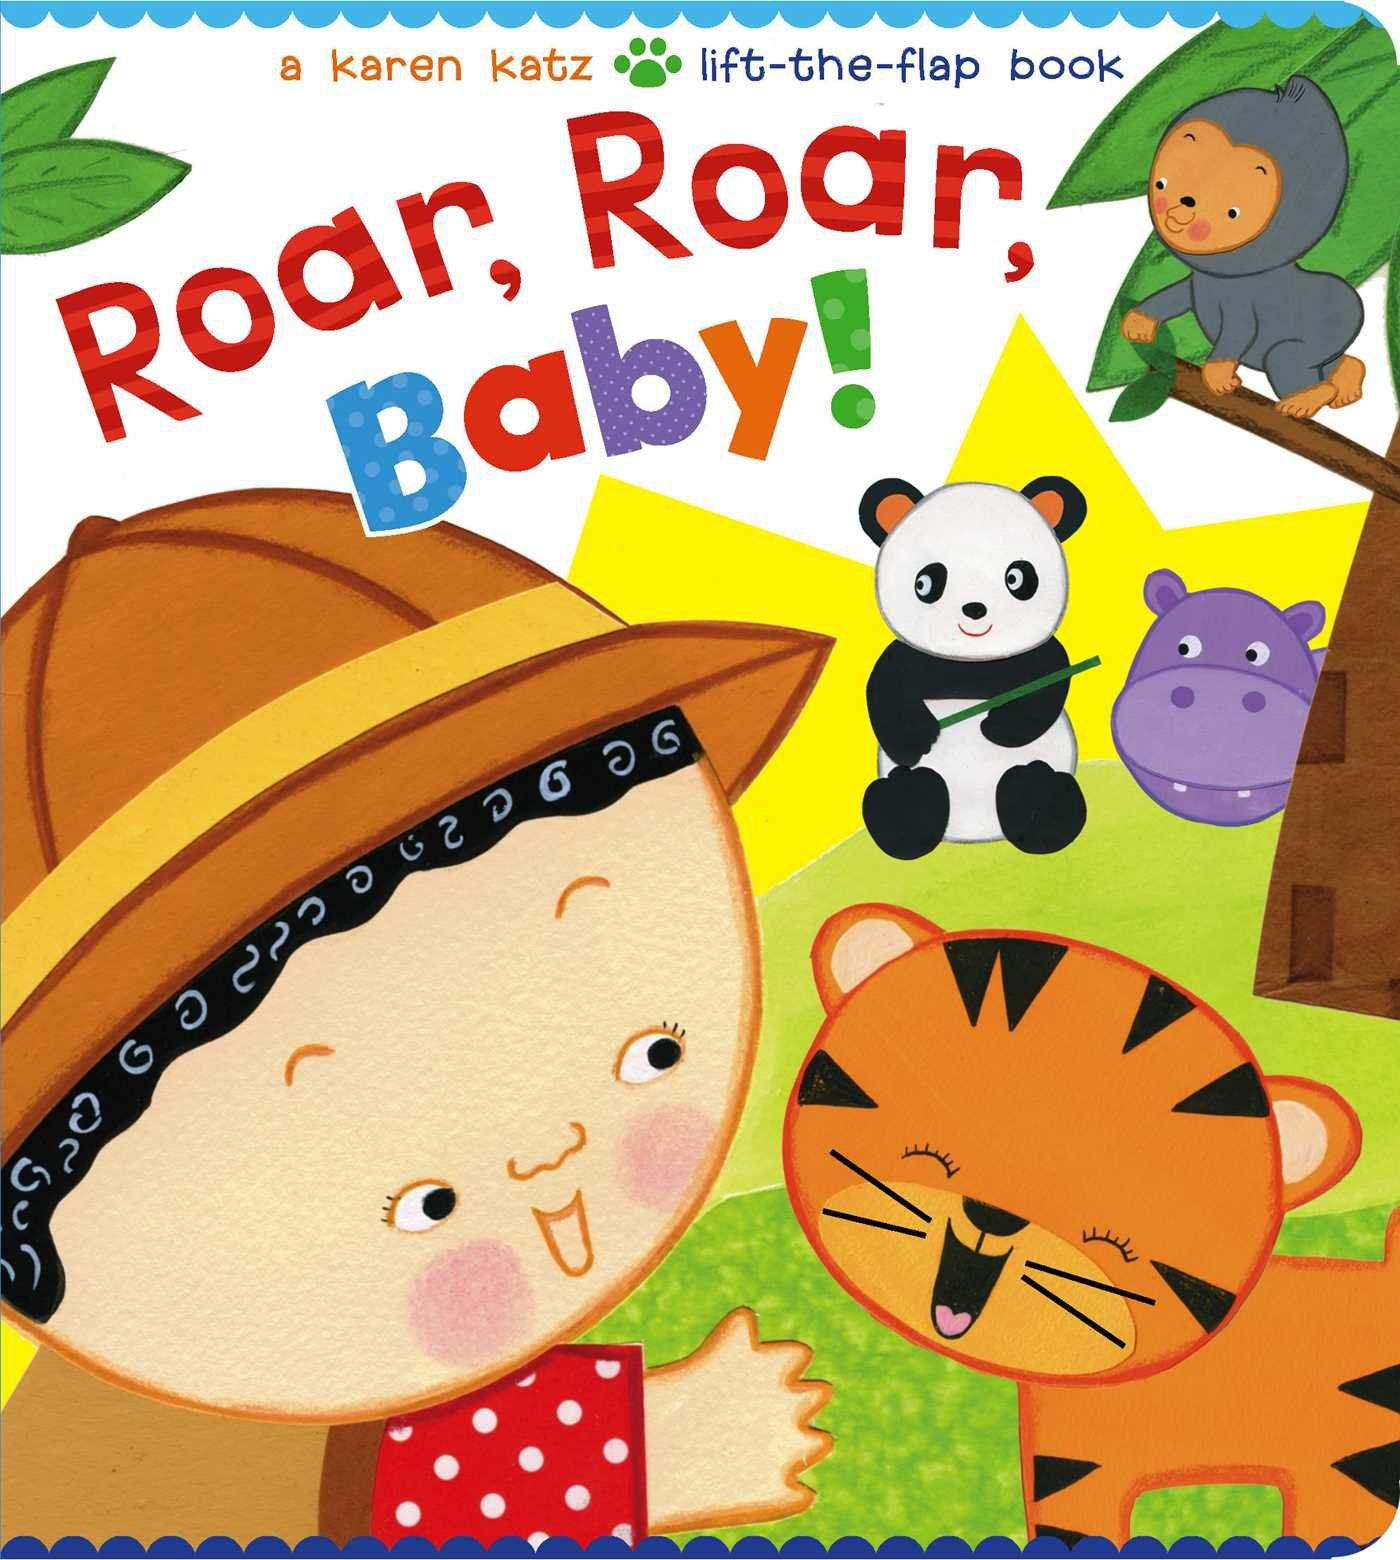 SI - Roar, Roar, Baby!: A Karen Katz Lift-the-Flap Book (Karen Katz Lift-the-Flap Books) - (Board Book)